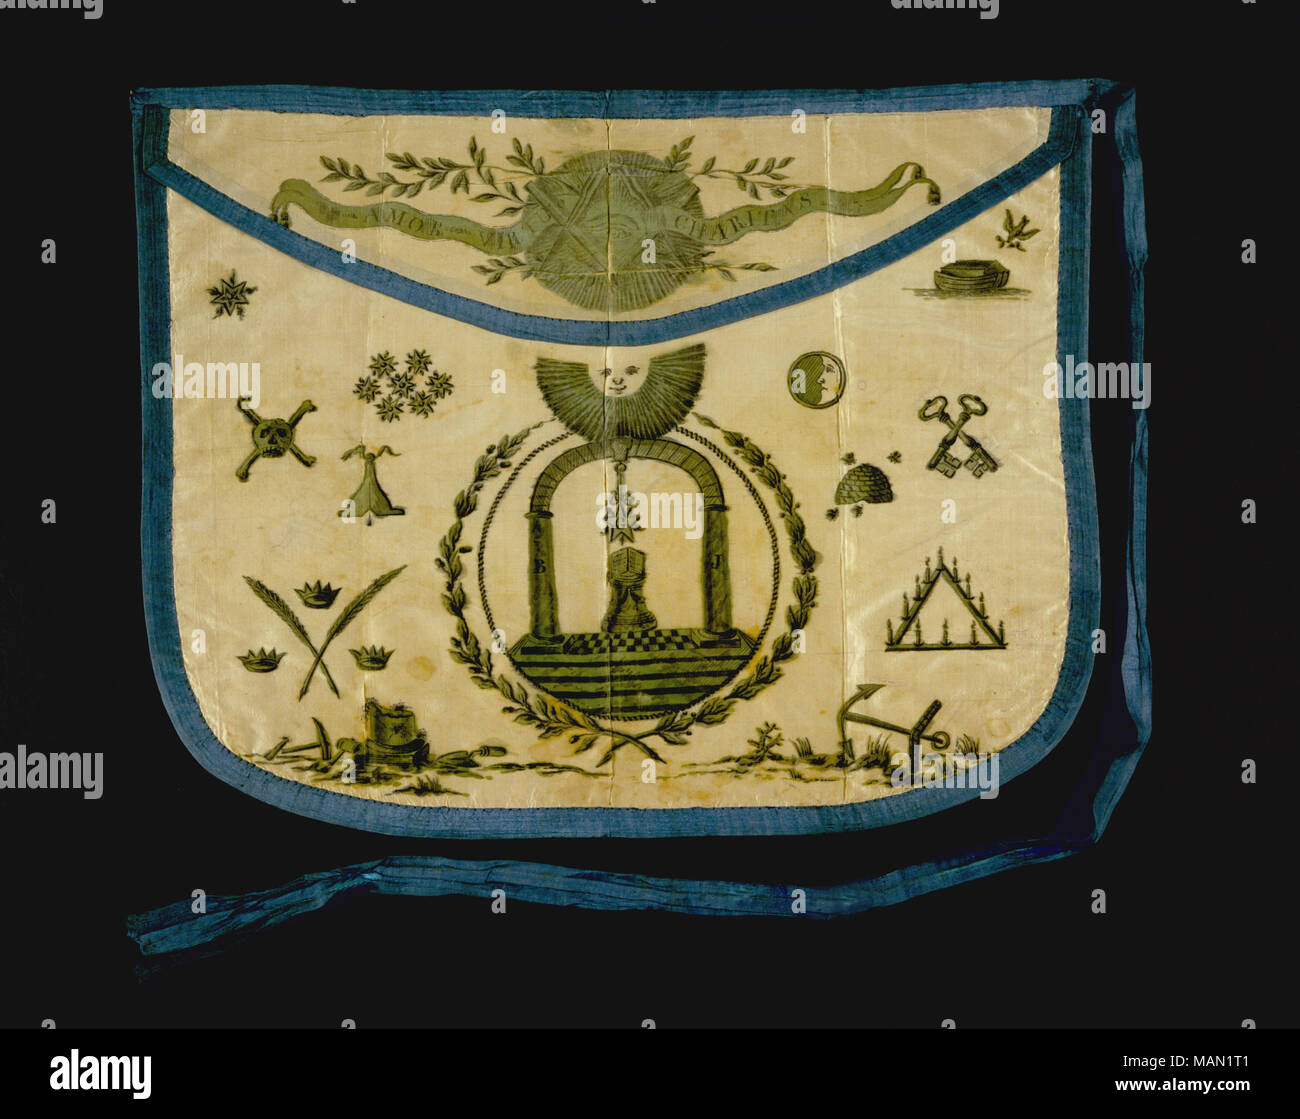 Masonic apron owned by Meriwether Lewis  Lewis was inducted